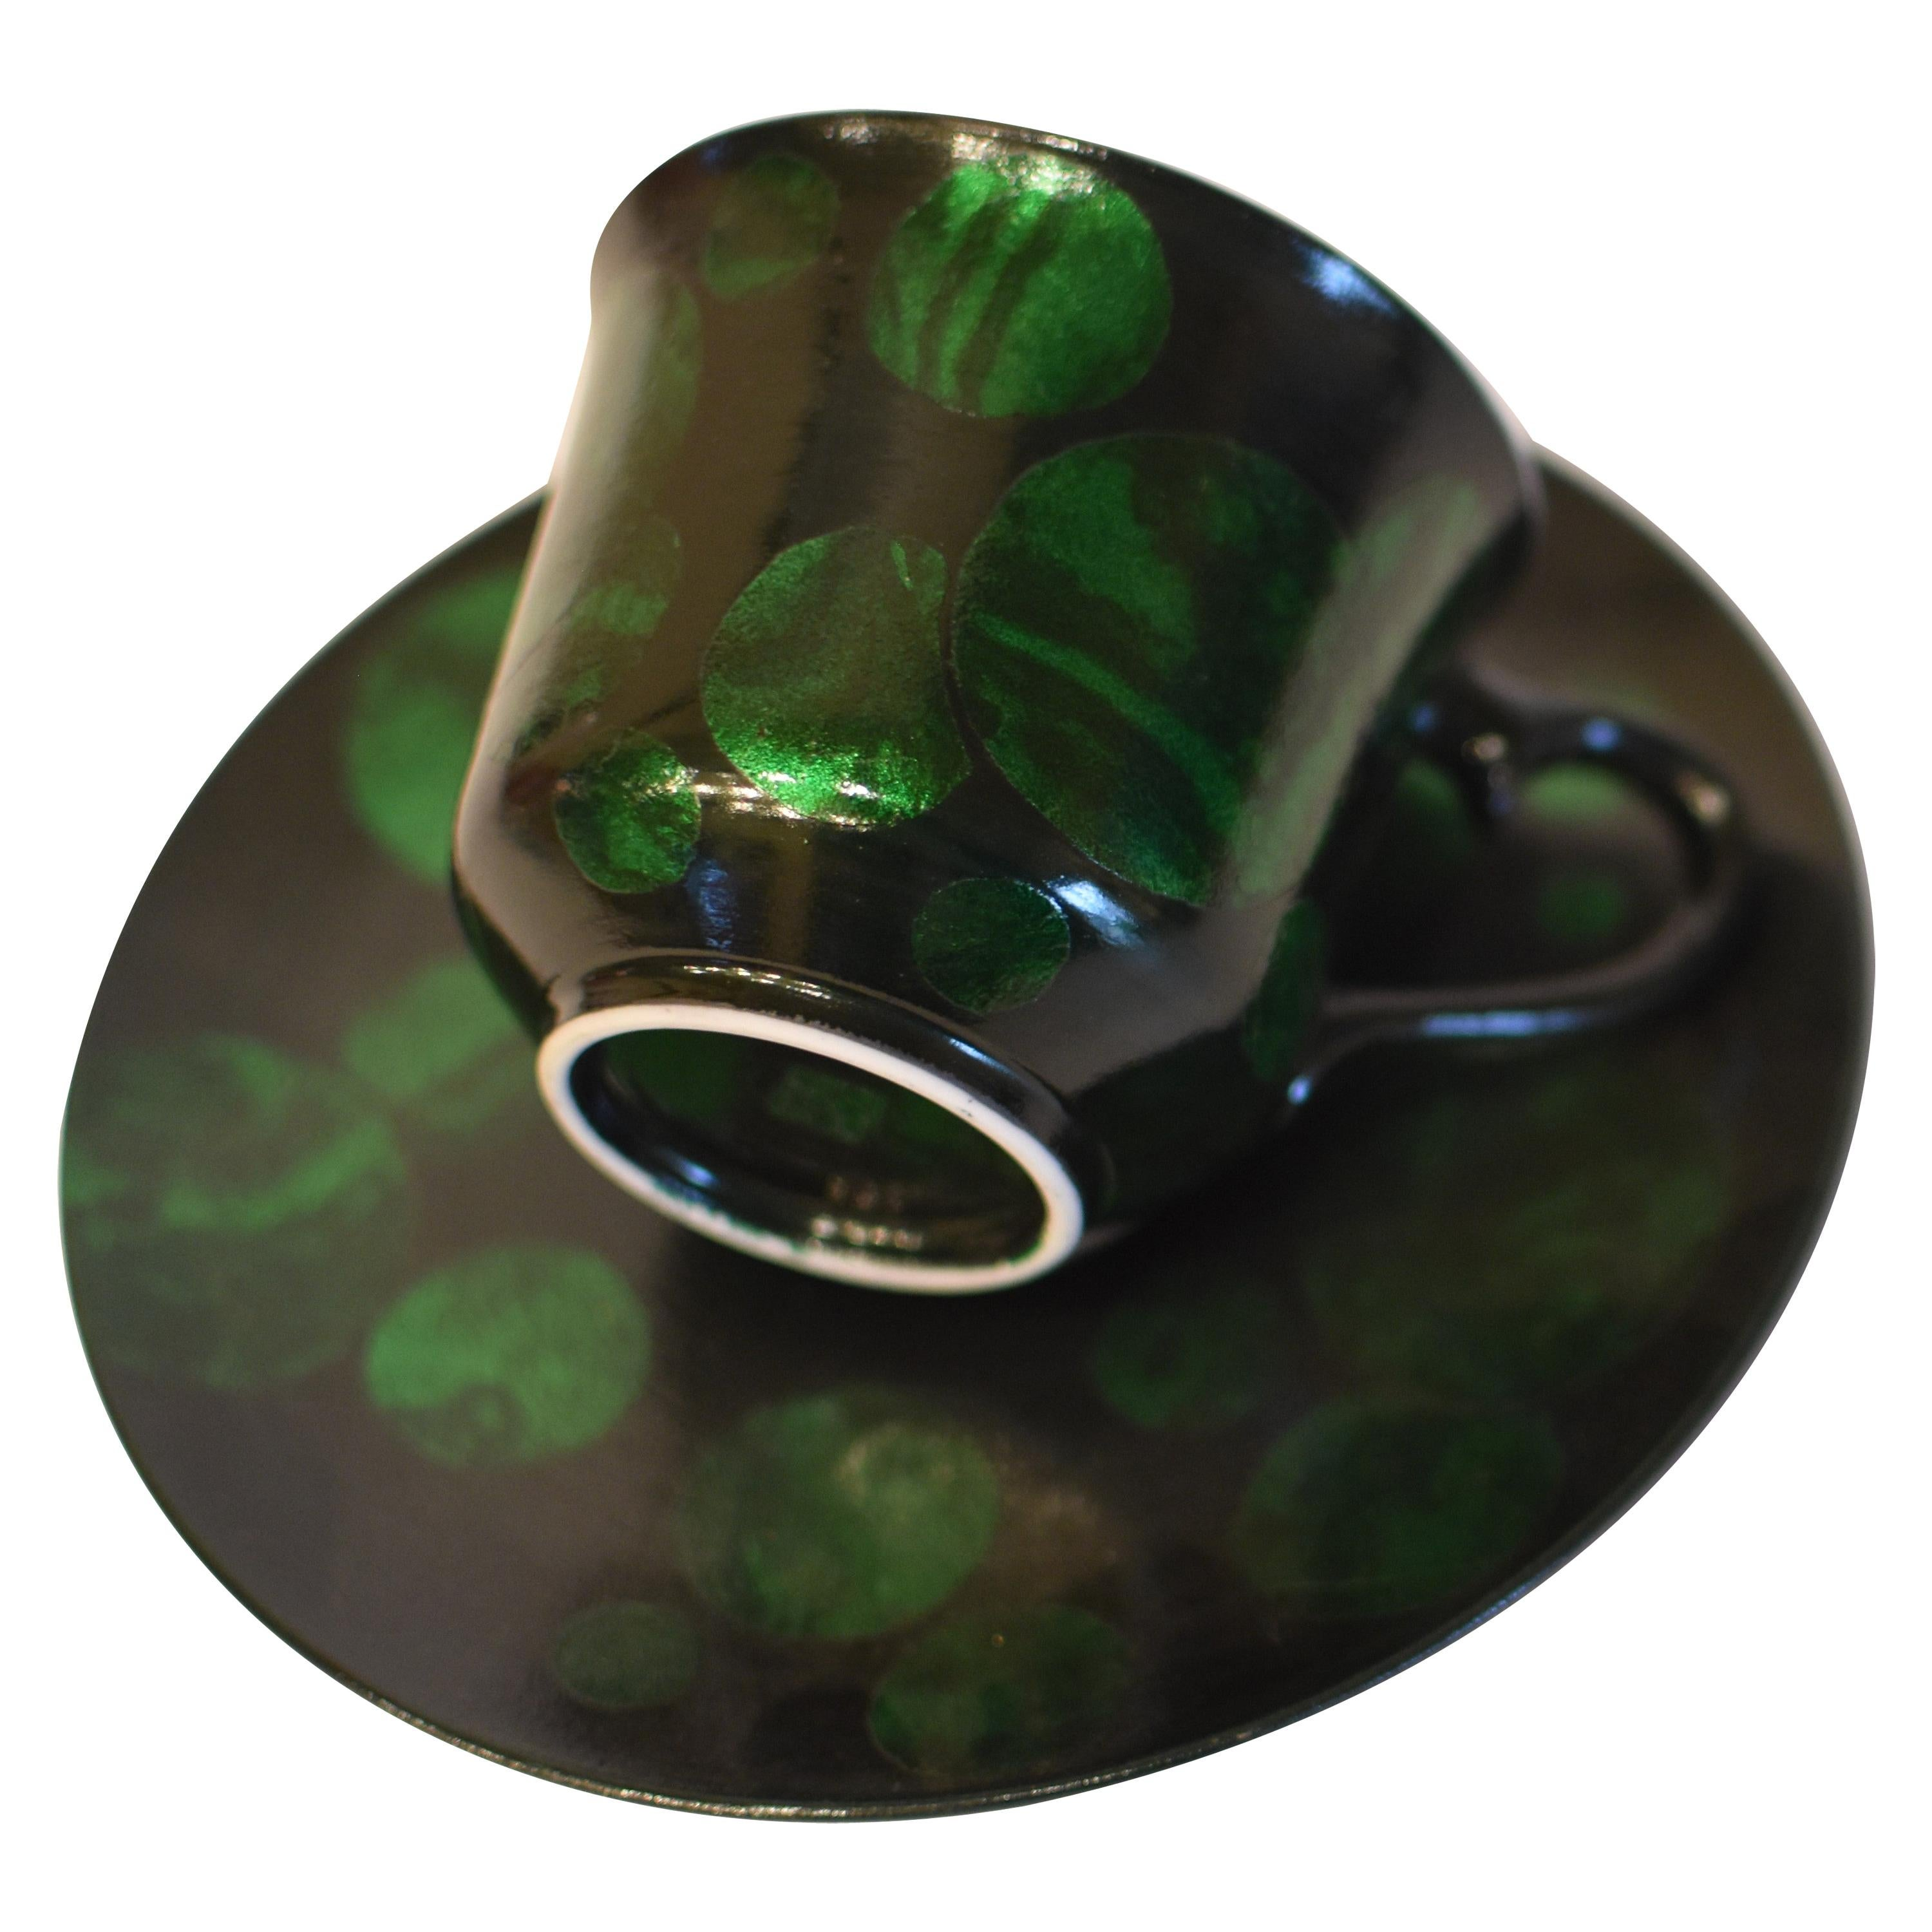 Japanese Silver Leaf Green Porcelain Cup and Saucer by Master Artist